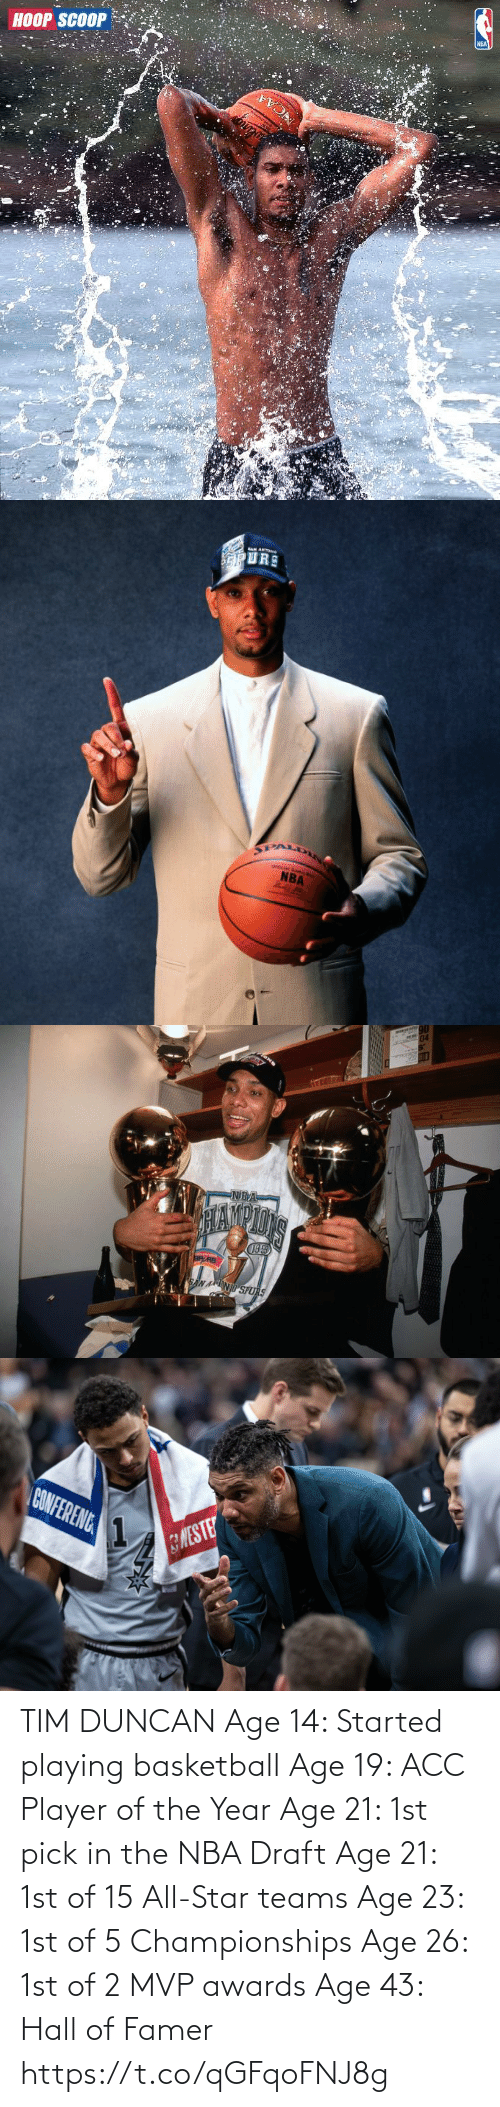 awards: TIM DUNCAN  Age 14: Started playing basketball Age 19: ACC Player of the Year Age 21: 1st pick in the NBA Draft Age 21: 1st of 15 All-Star teams Age 23: 1st of 5 Championships Age 26: 1st of 2 MVP awards Age 43: Hall of Famer https://t.co/qGFqoFNJ8g